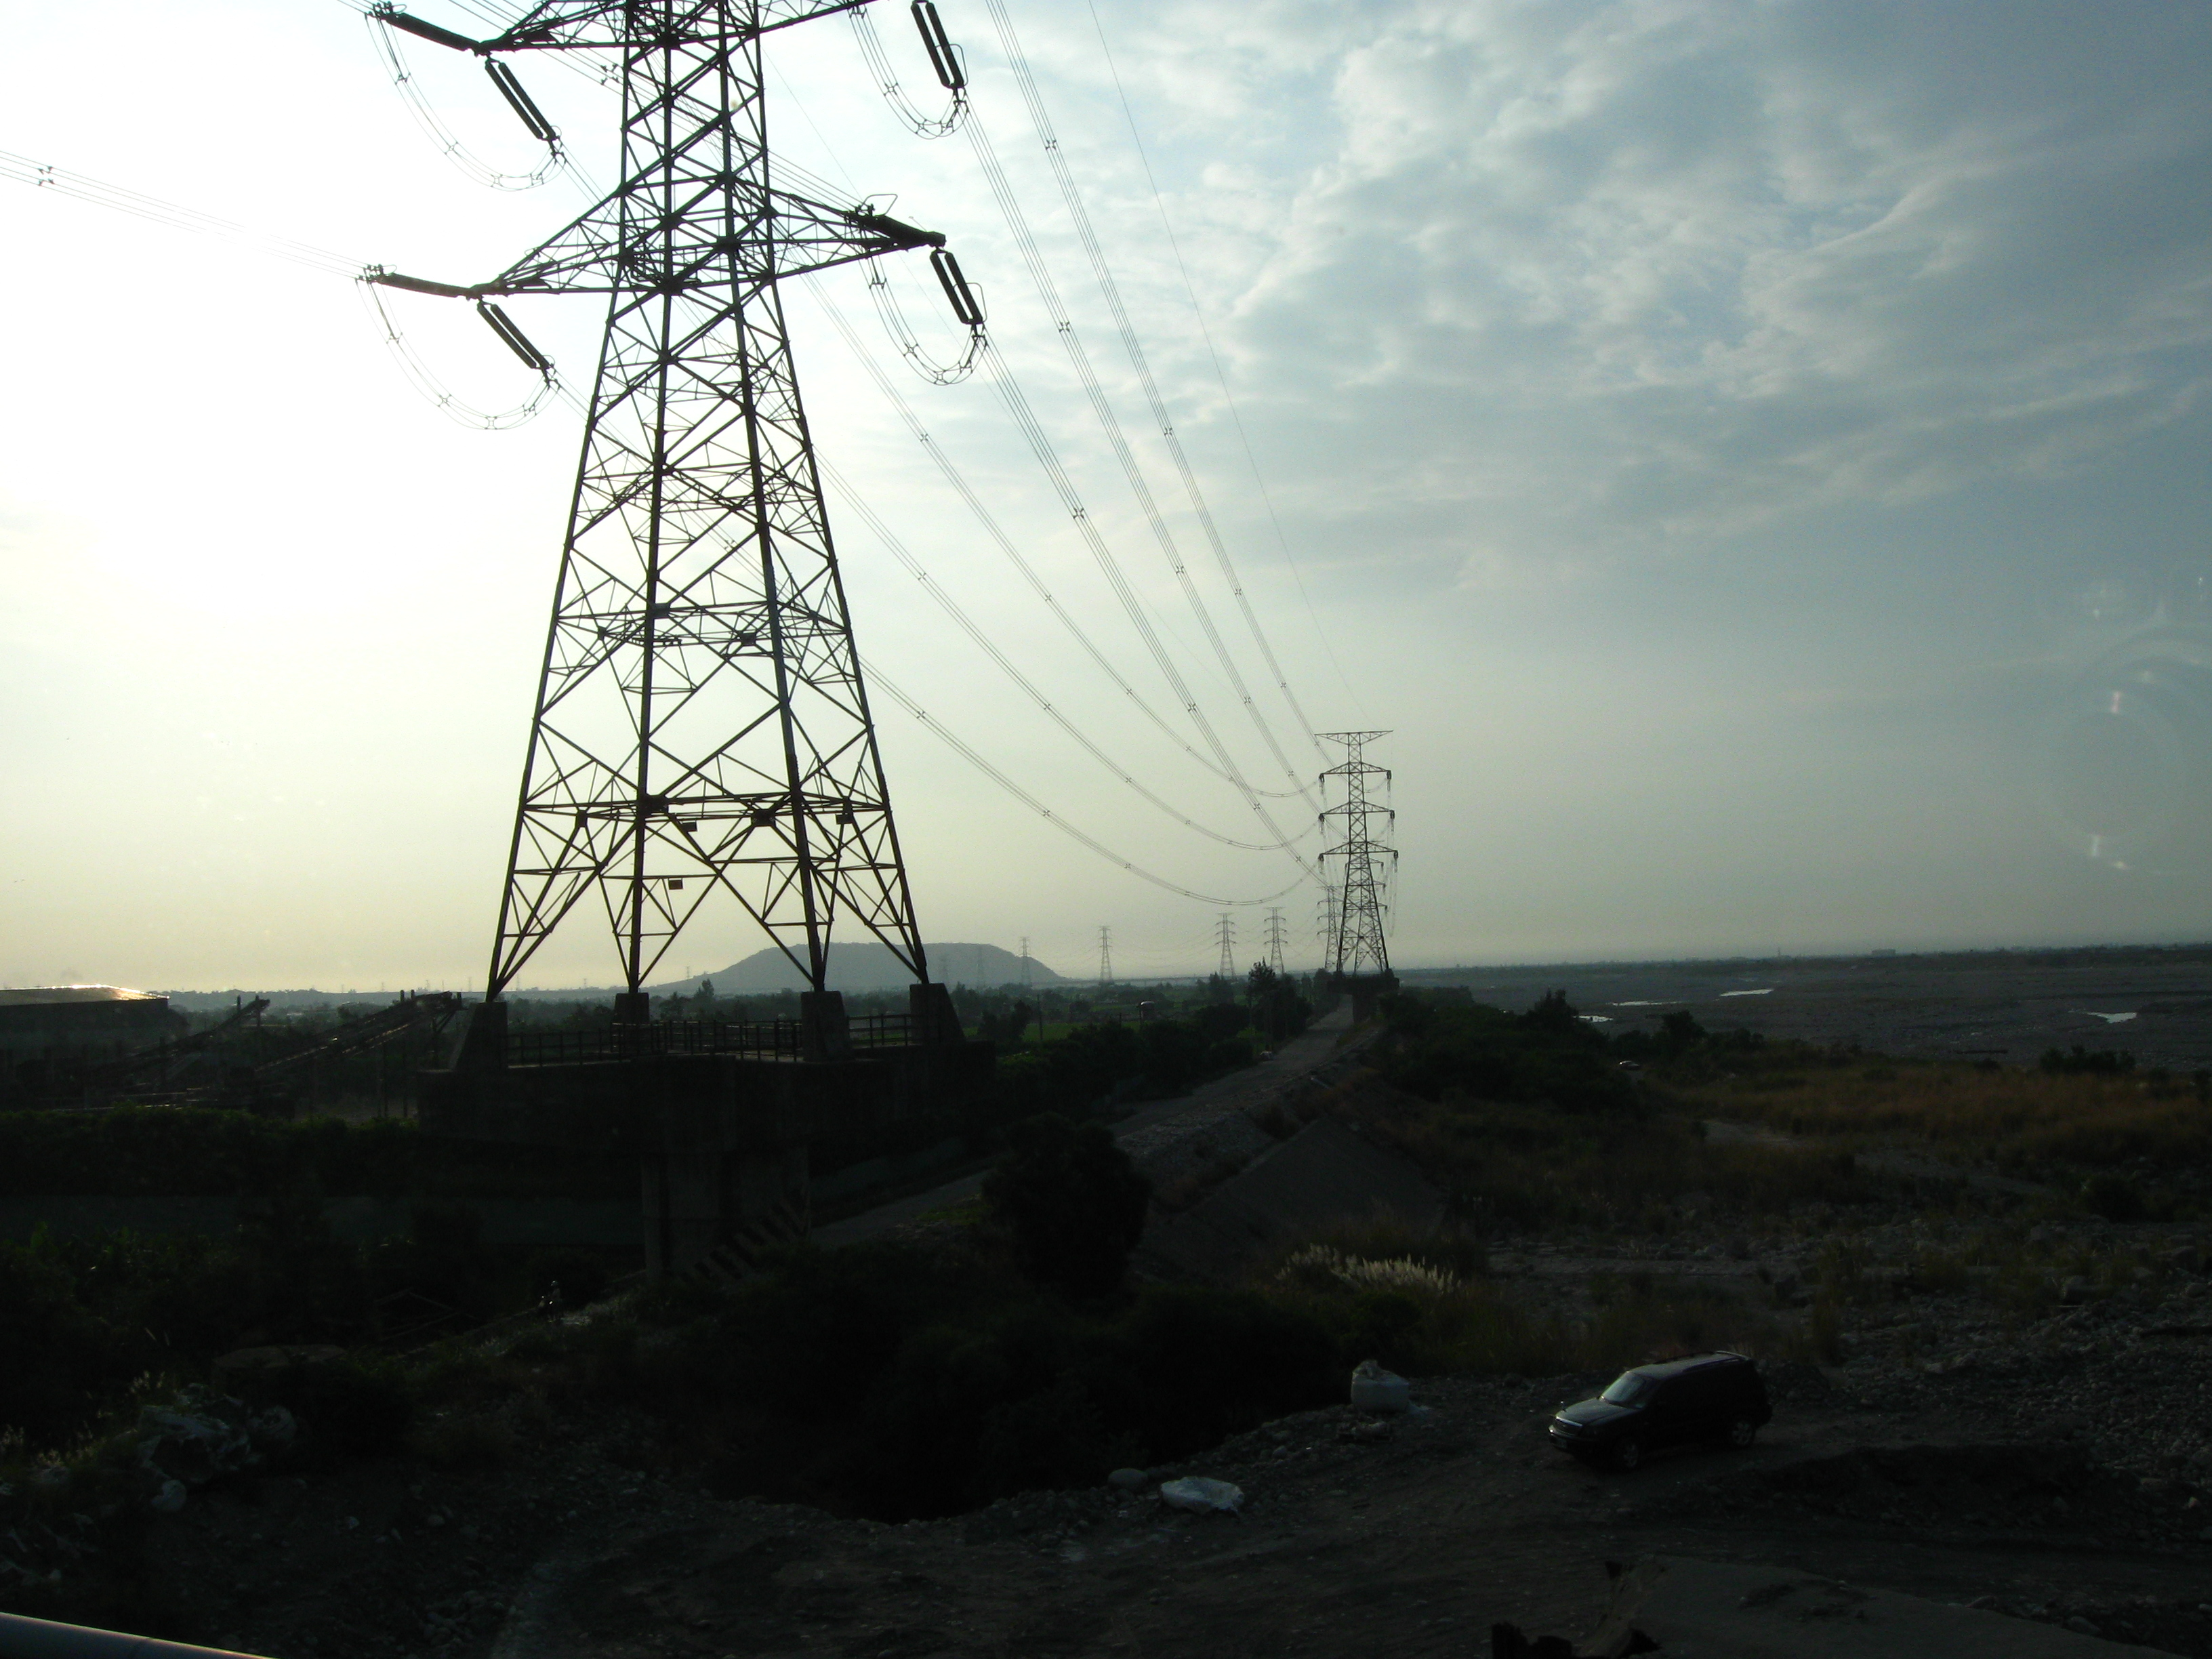 Power lines and towers photo